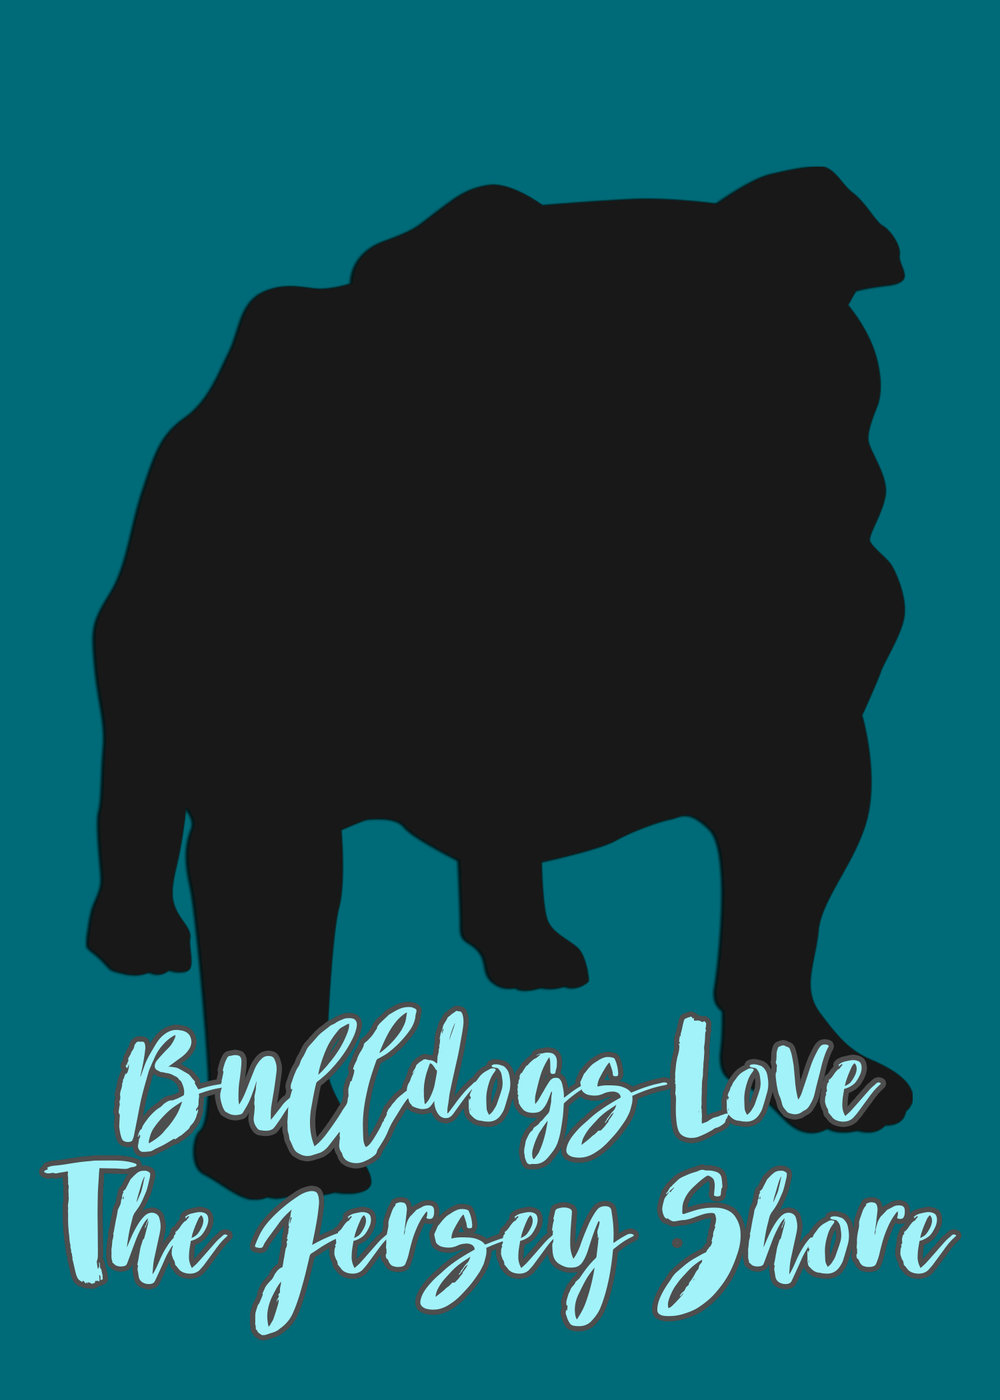 ABS_Dogslove_0009_Bulldogs-Love-The-Jersey-Shore.png.jpg